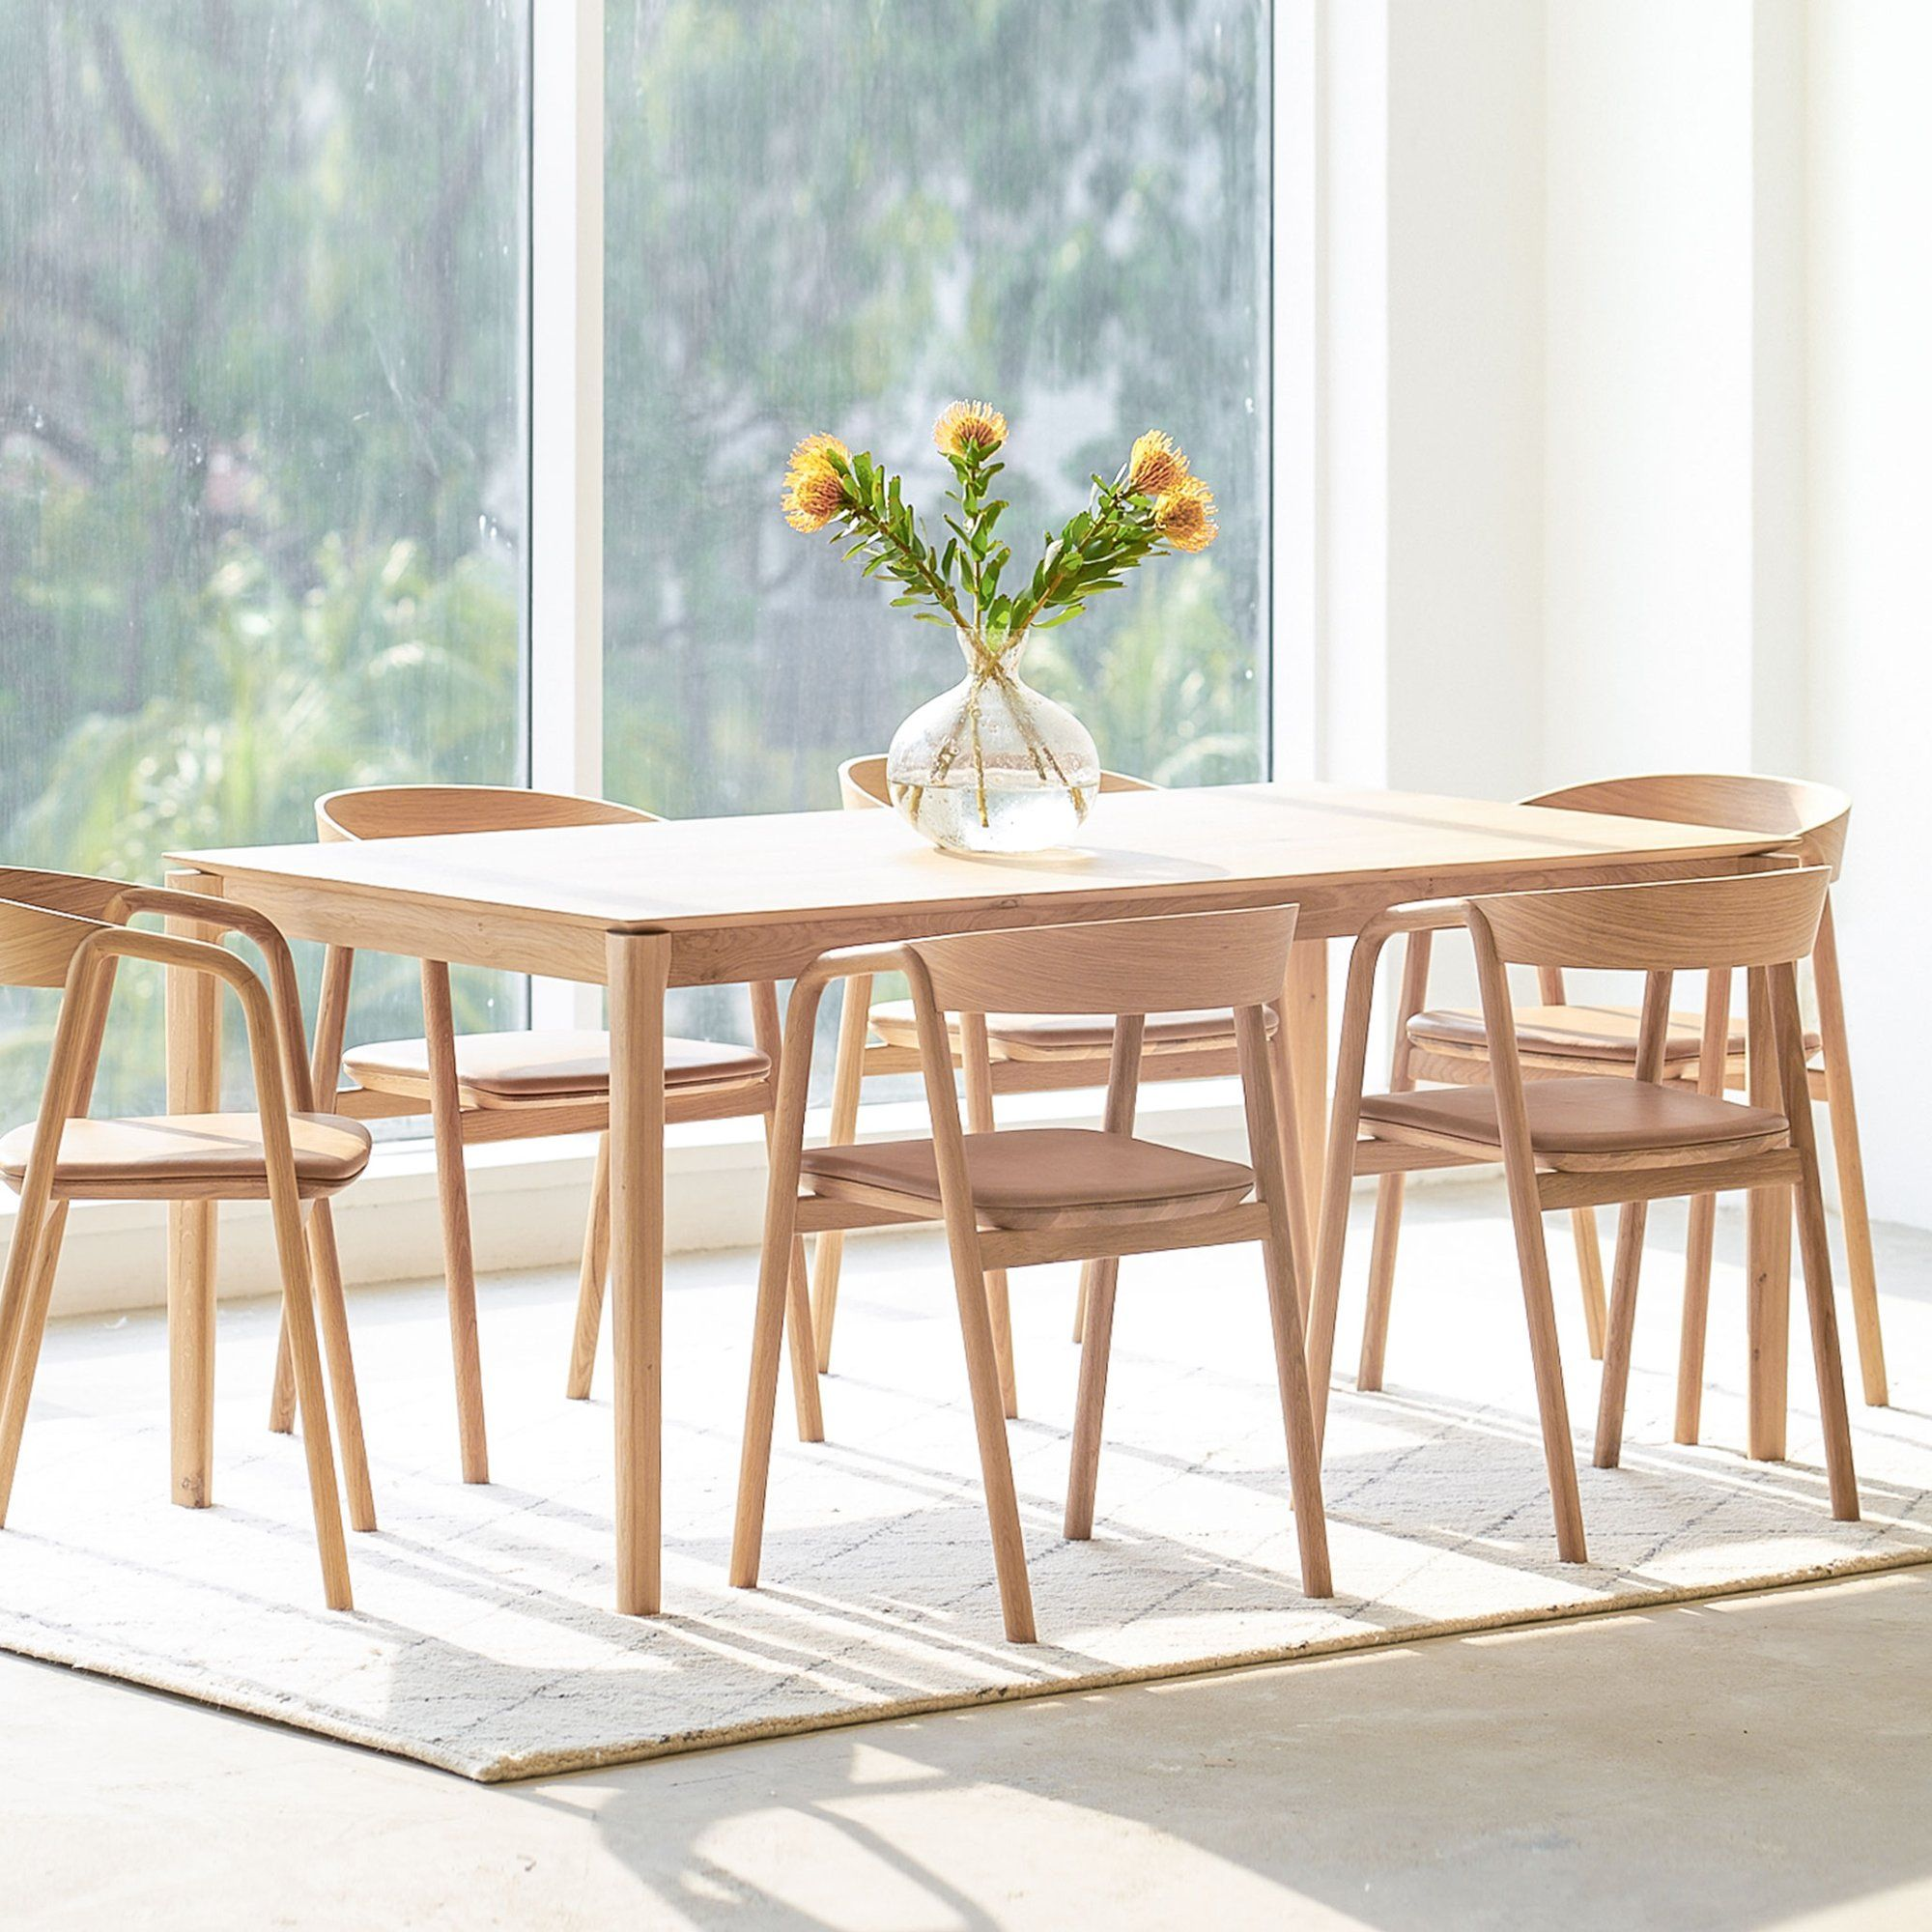 Oak Dining Table Bok Ethnicraft Dining Table Dining Table Teak Dining Table